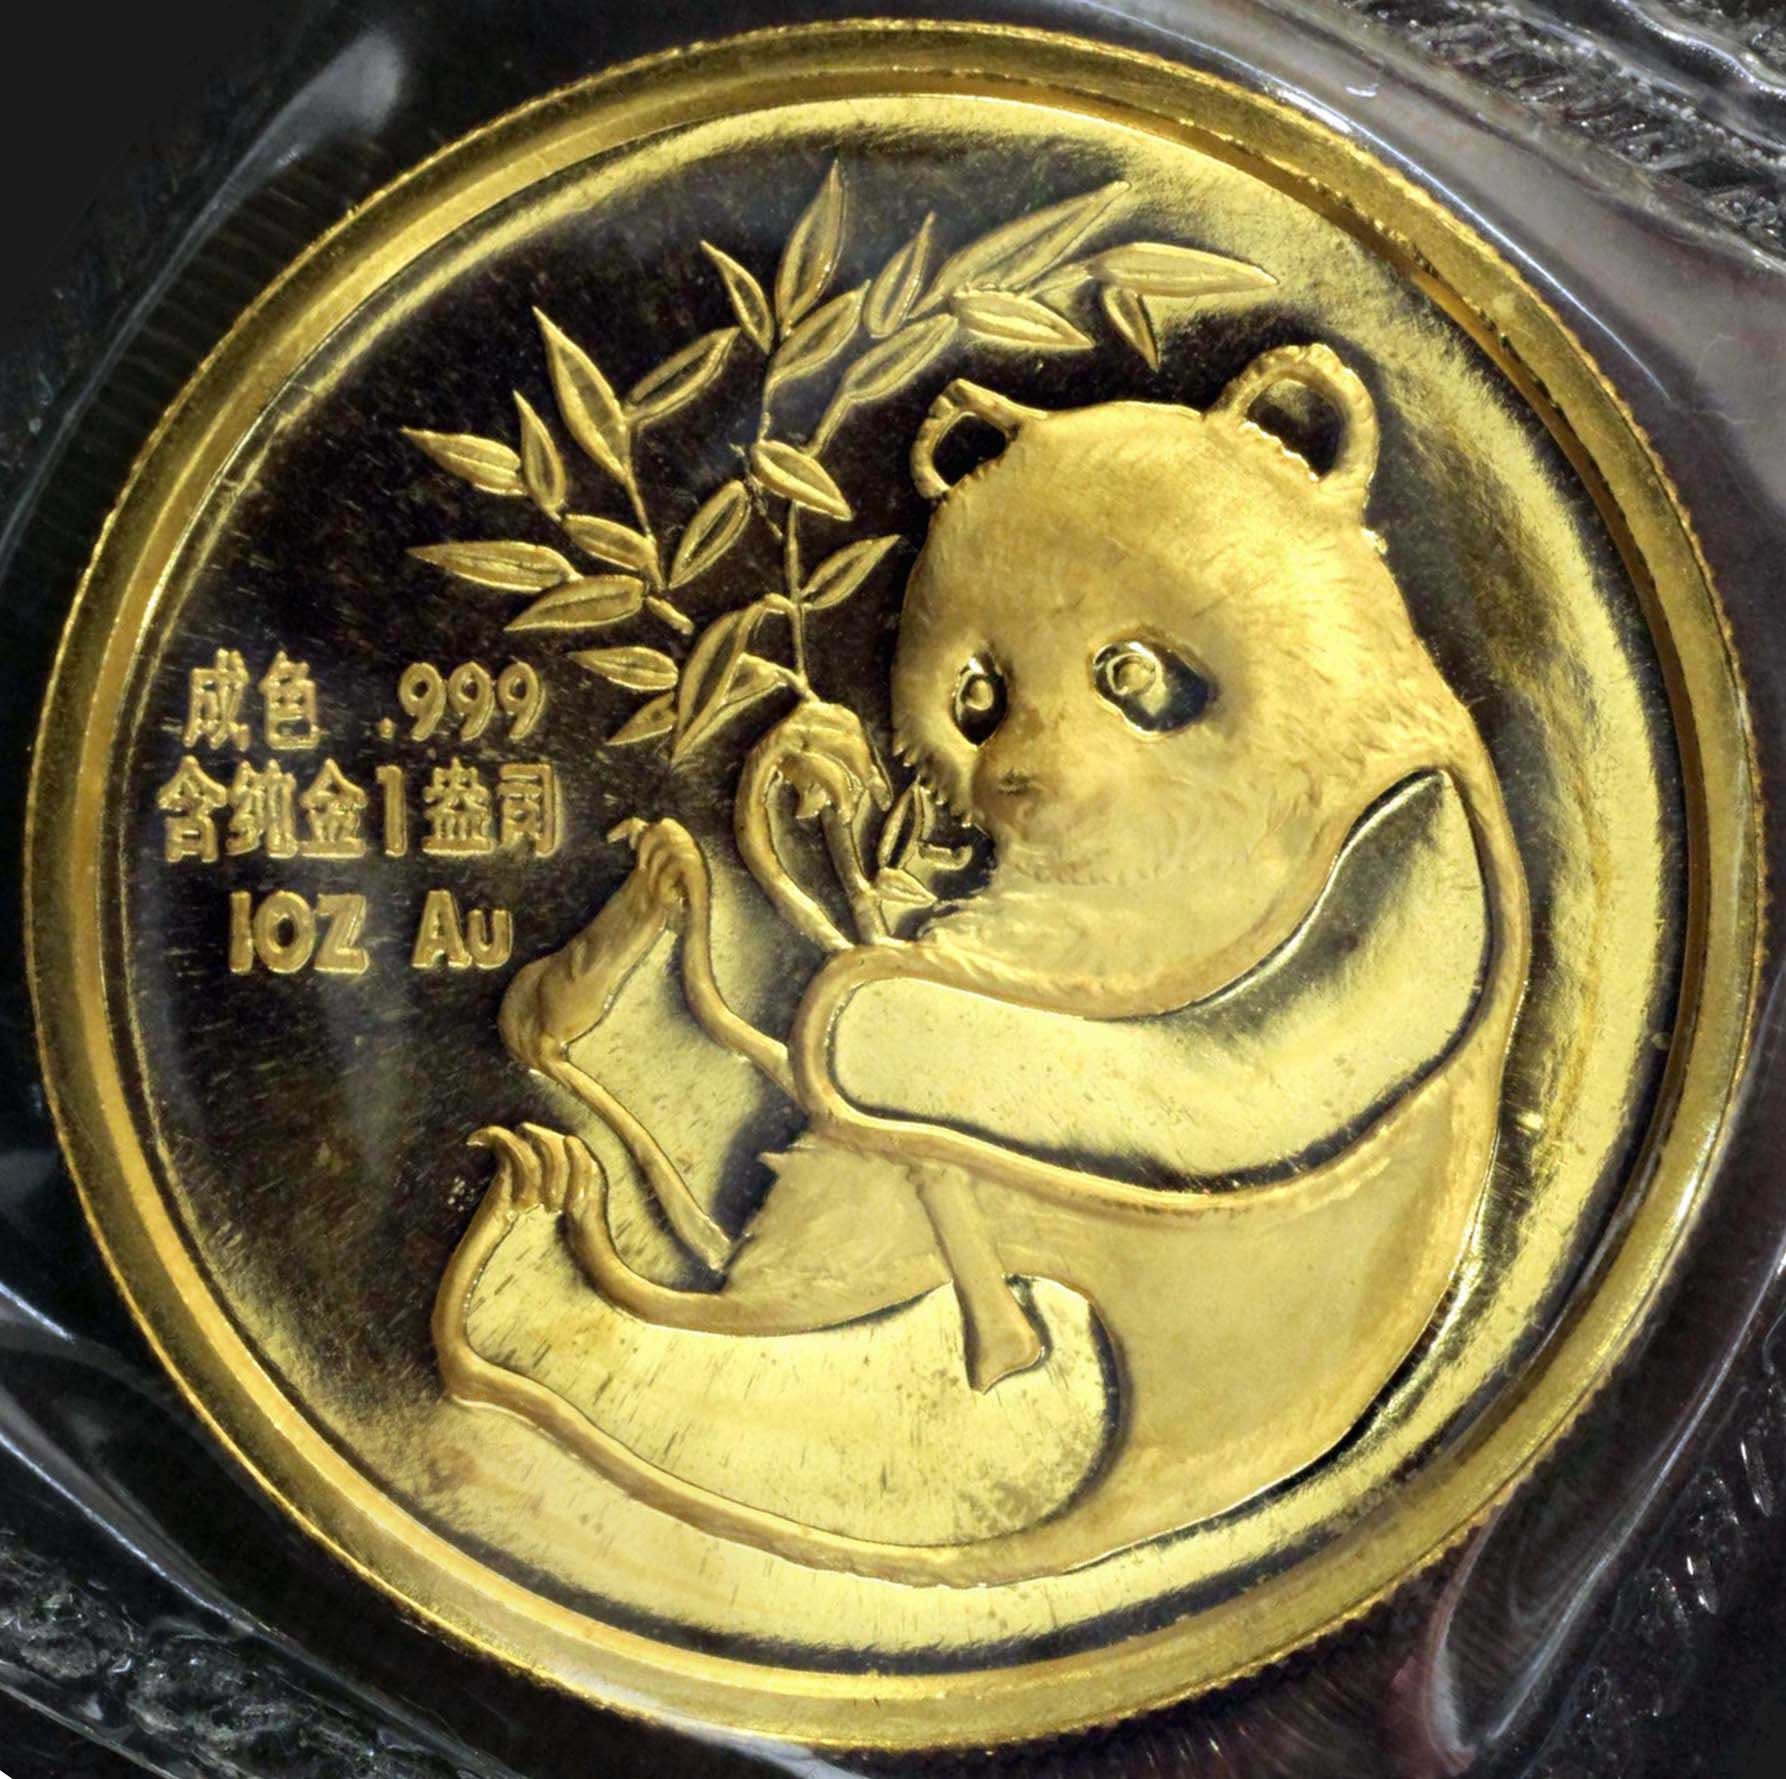 1993 China gold Peacock coin